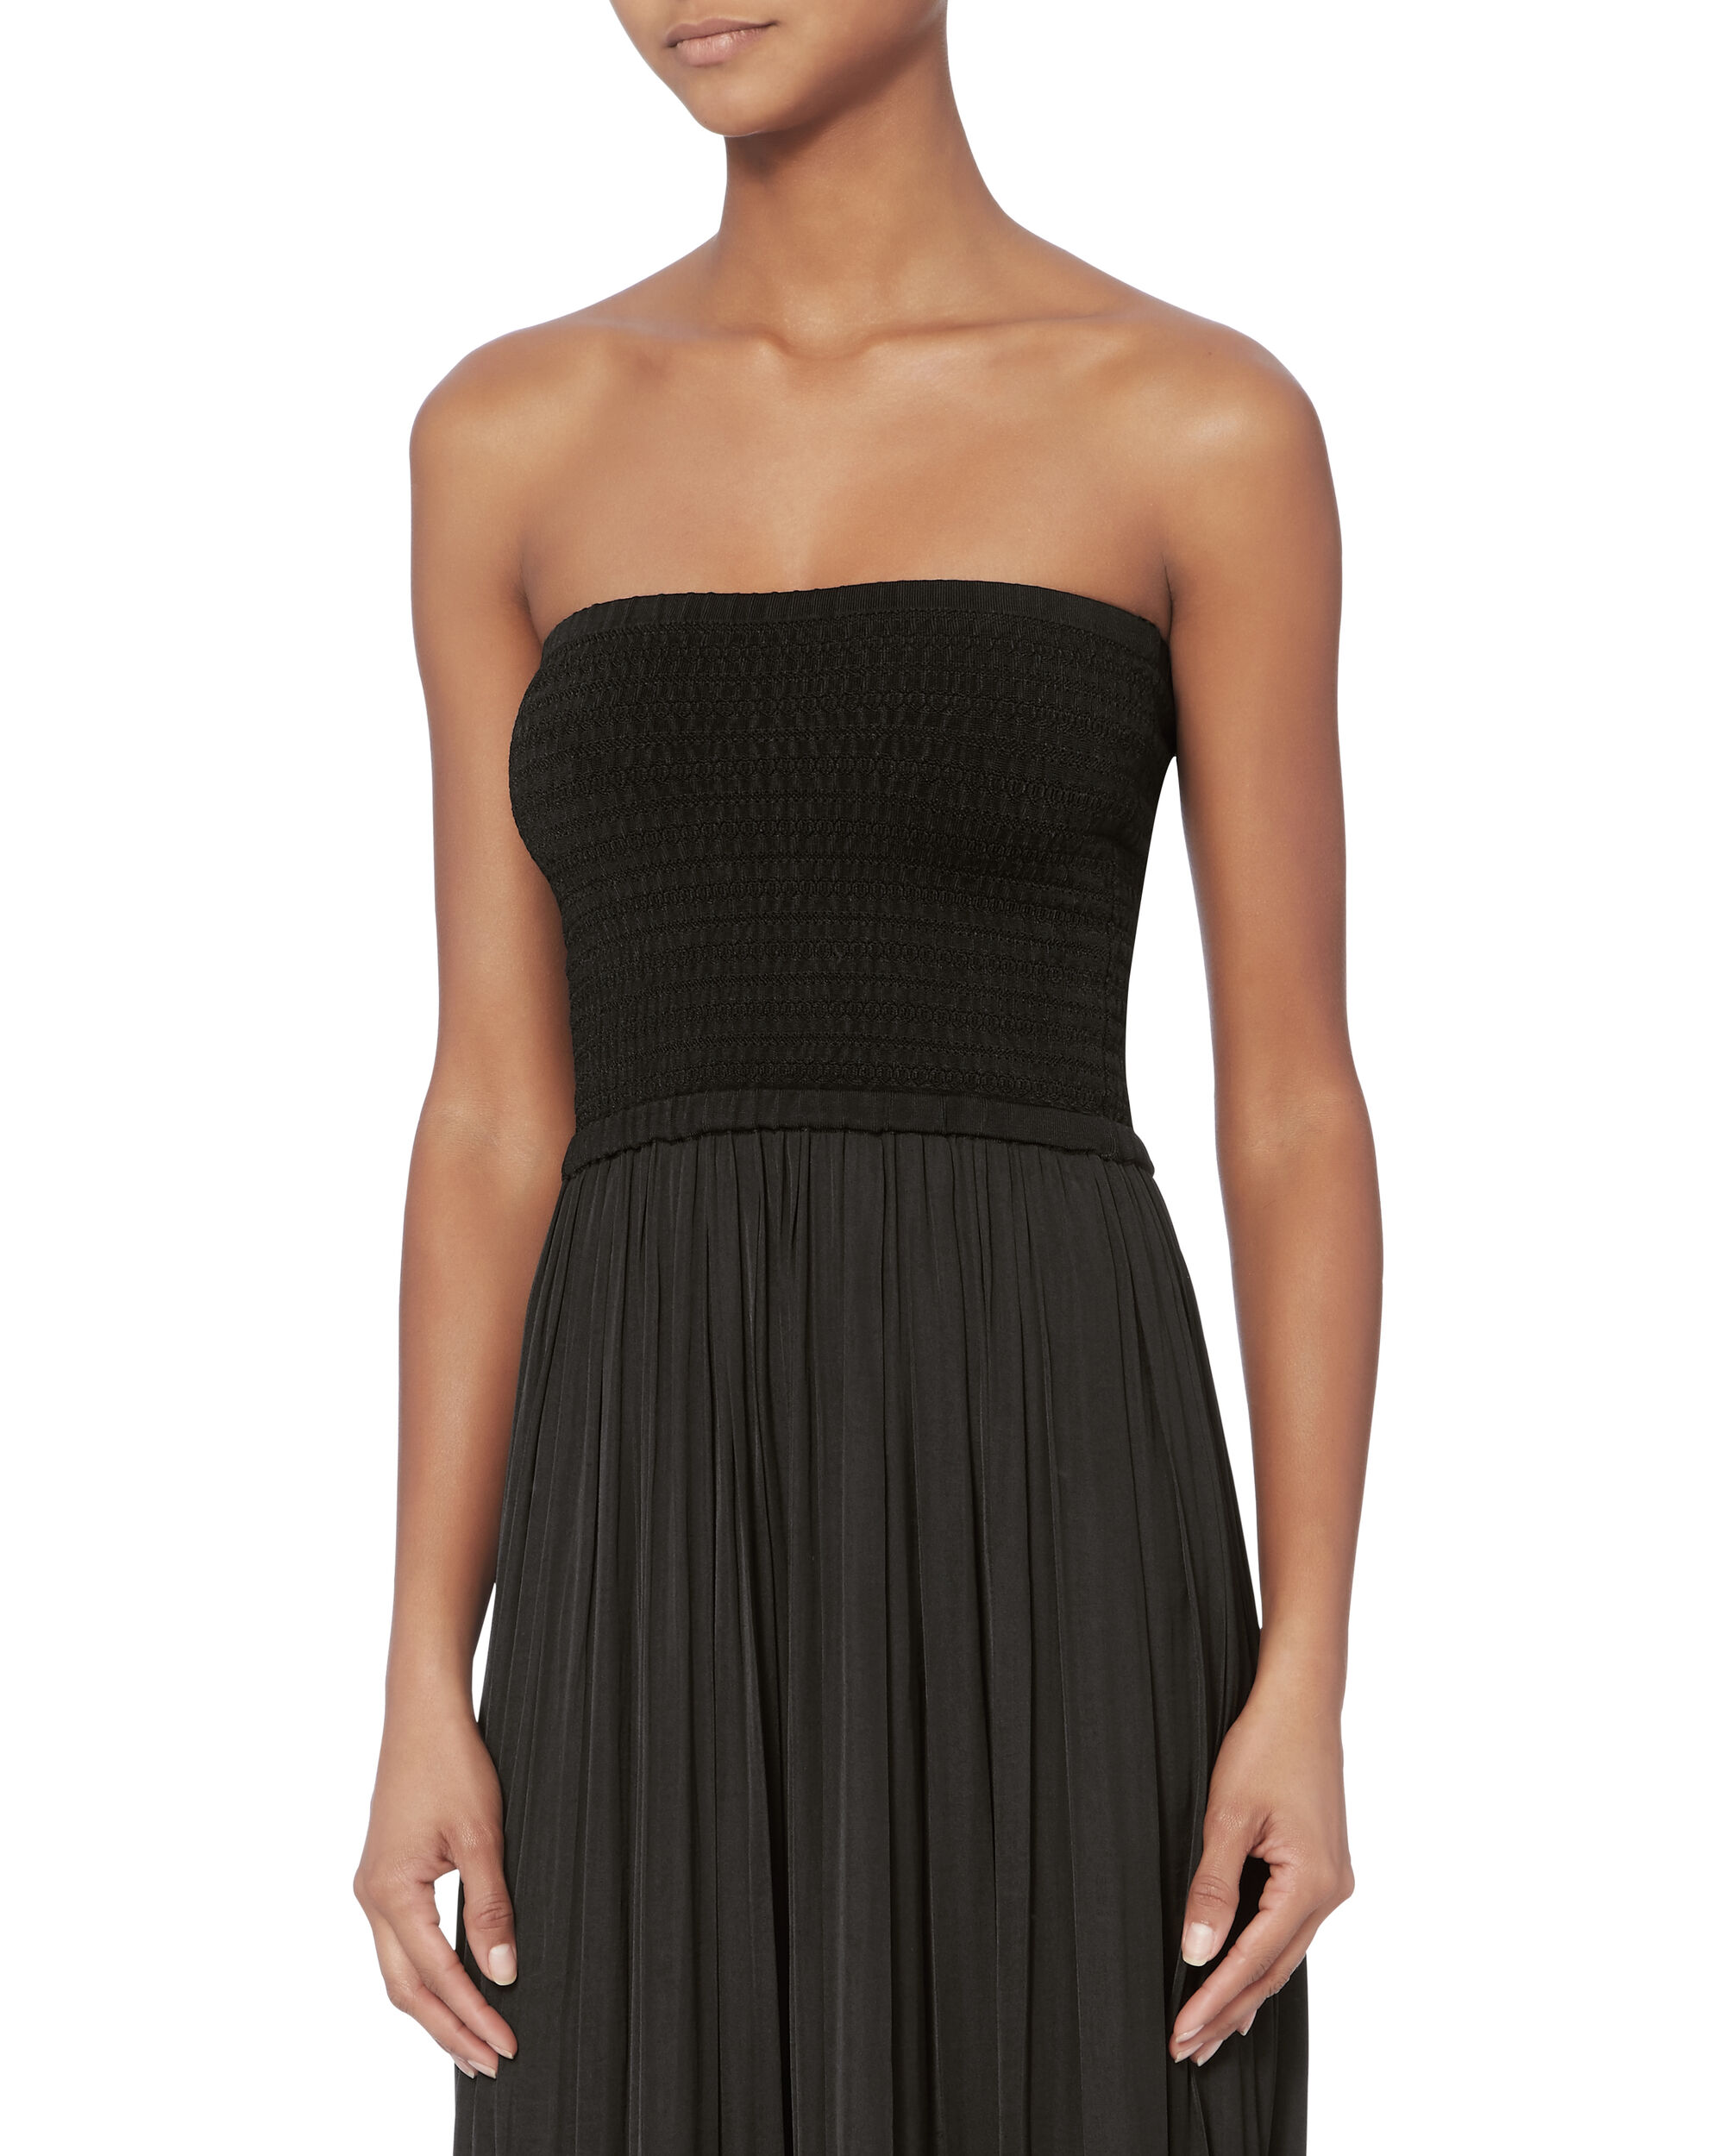 Emmaline Strapless Knit Combo Dress, BLACK, hi-res